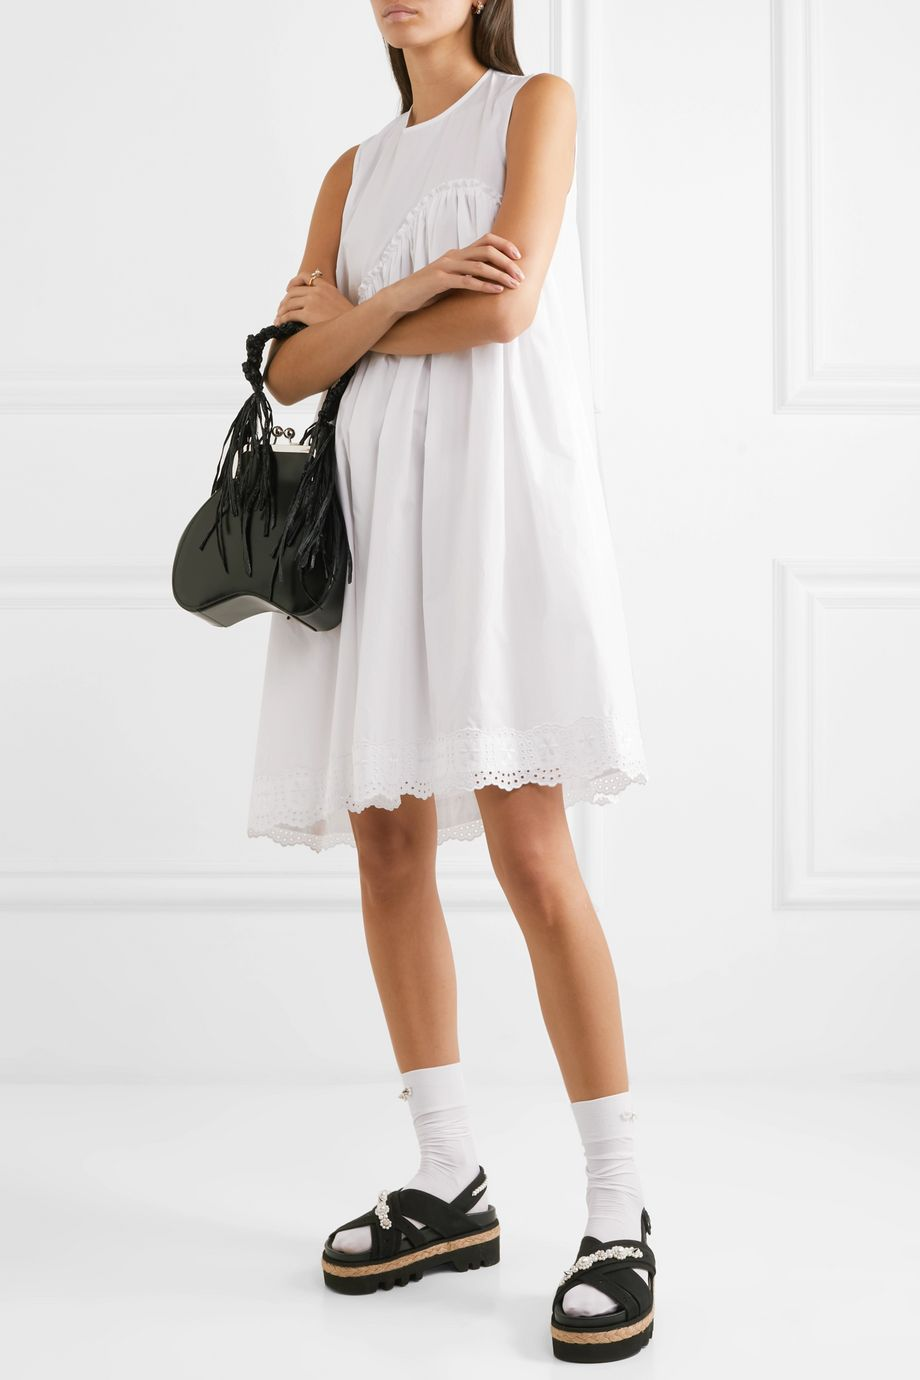 Simone Rocha Broderie anglaise cotton-poplin dress